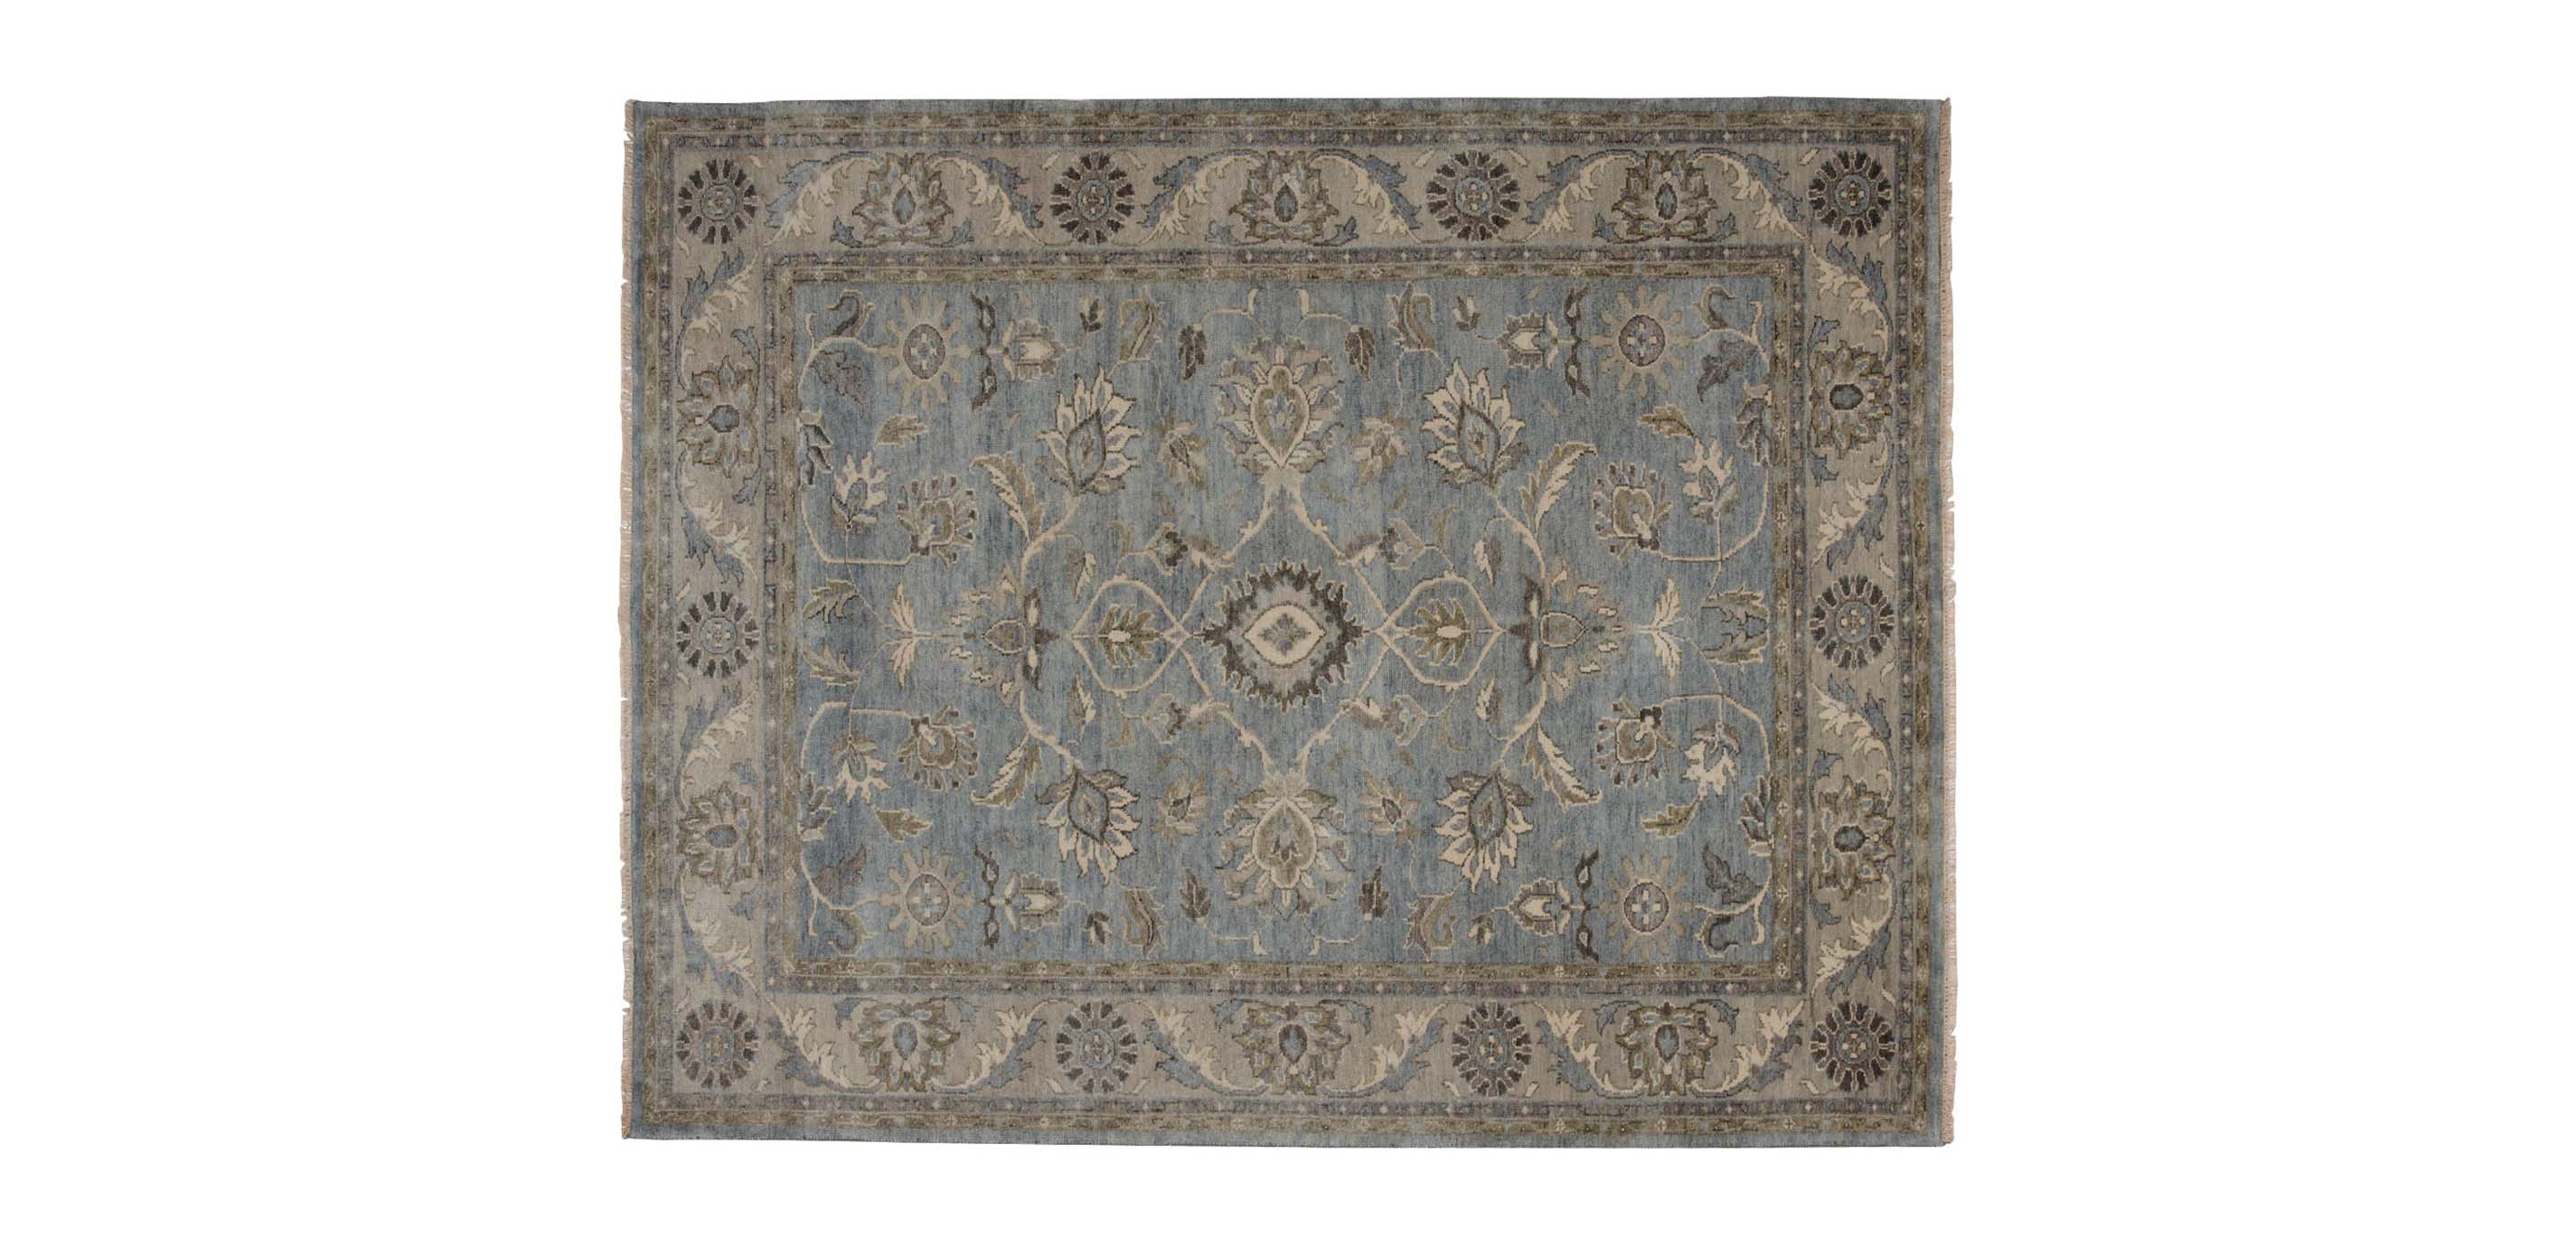 Suzain Rug Blue Gray Traditional Patterned Rugs Ethan